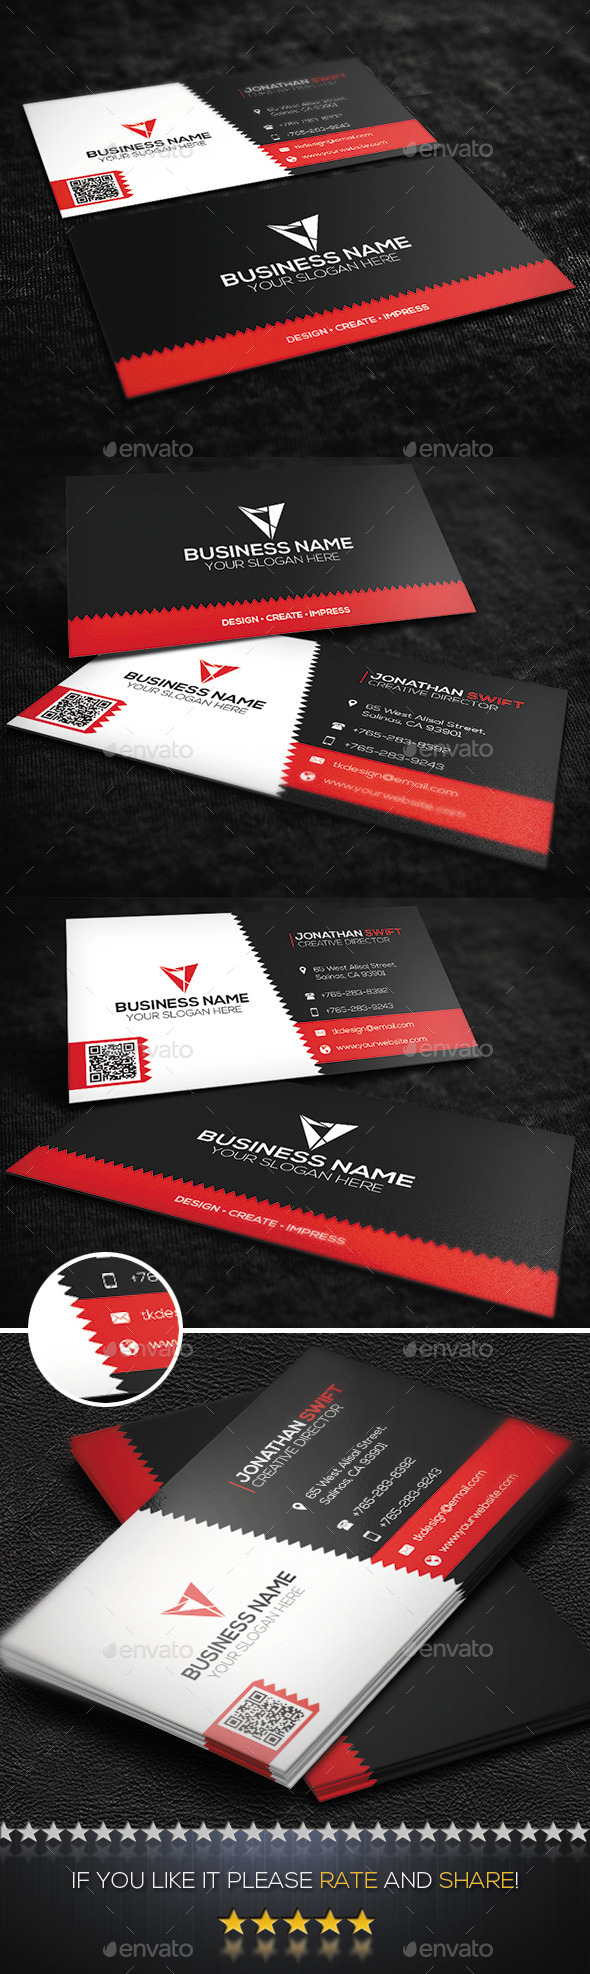 Corporate Business Card No.11 - Corporate Business Cards